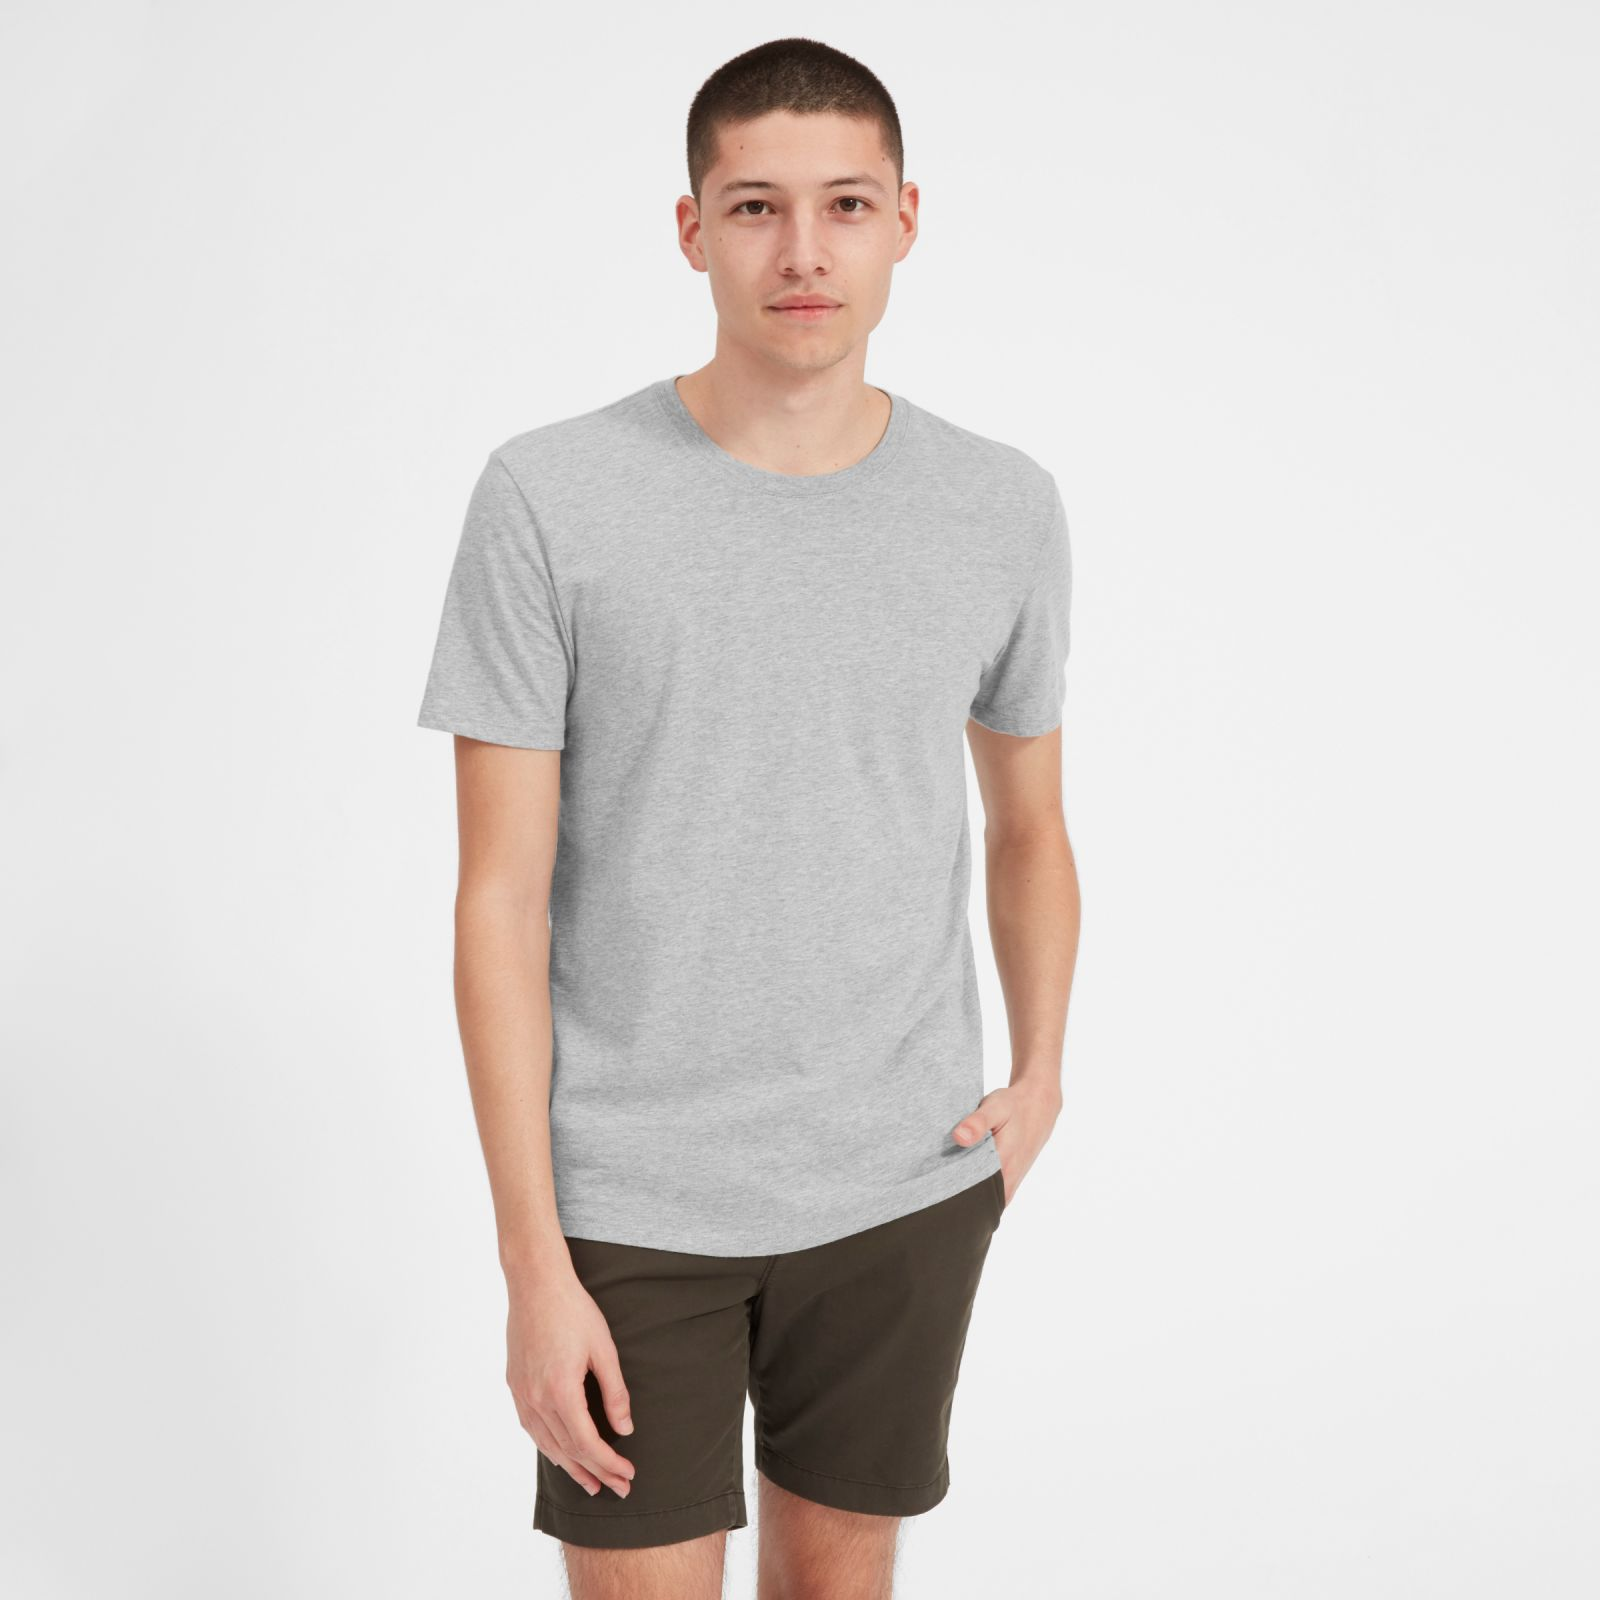 Men's Cotton Crew T-Shirt | Uniform